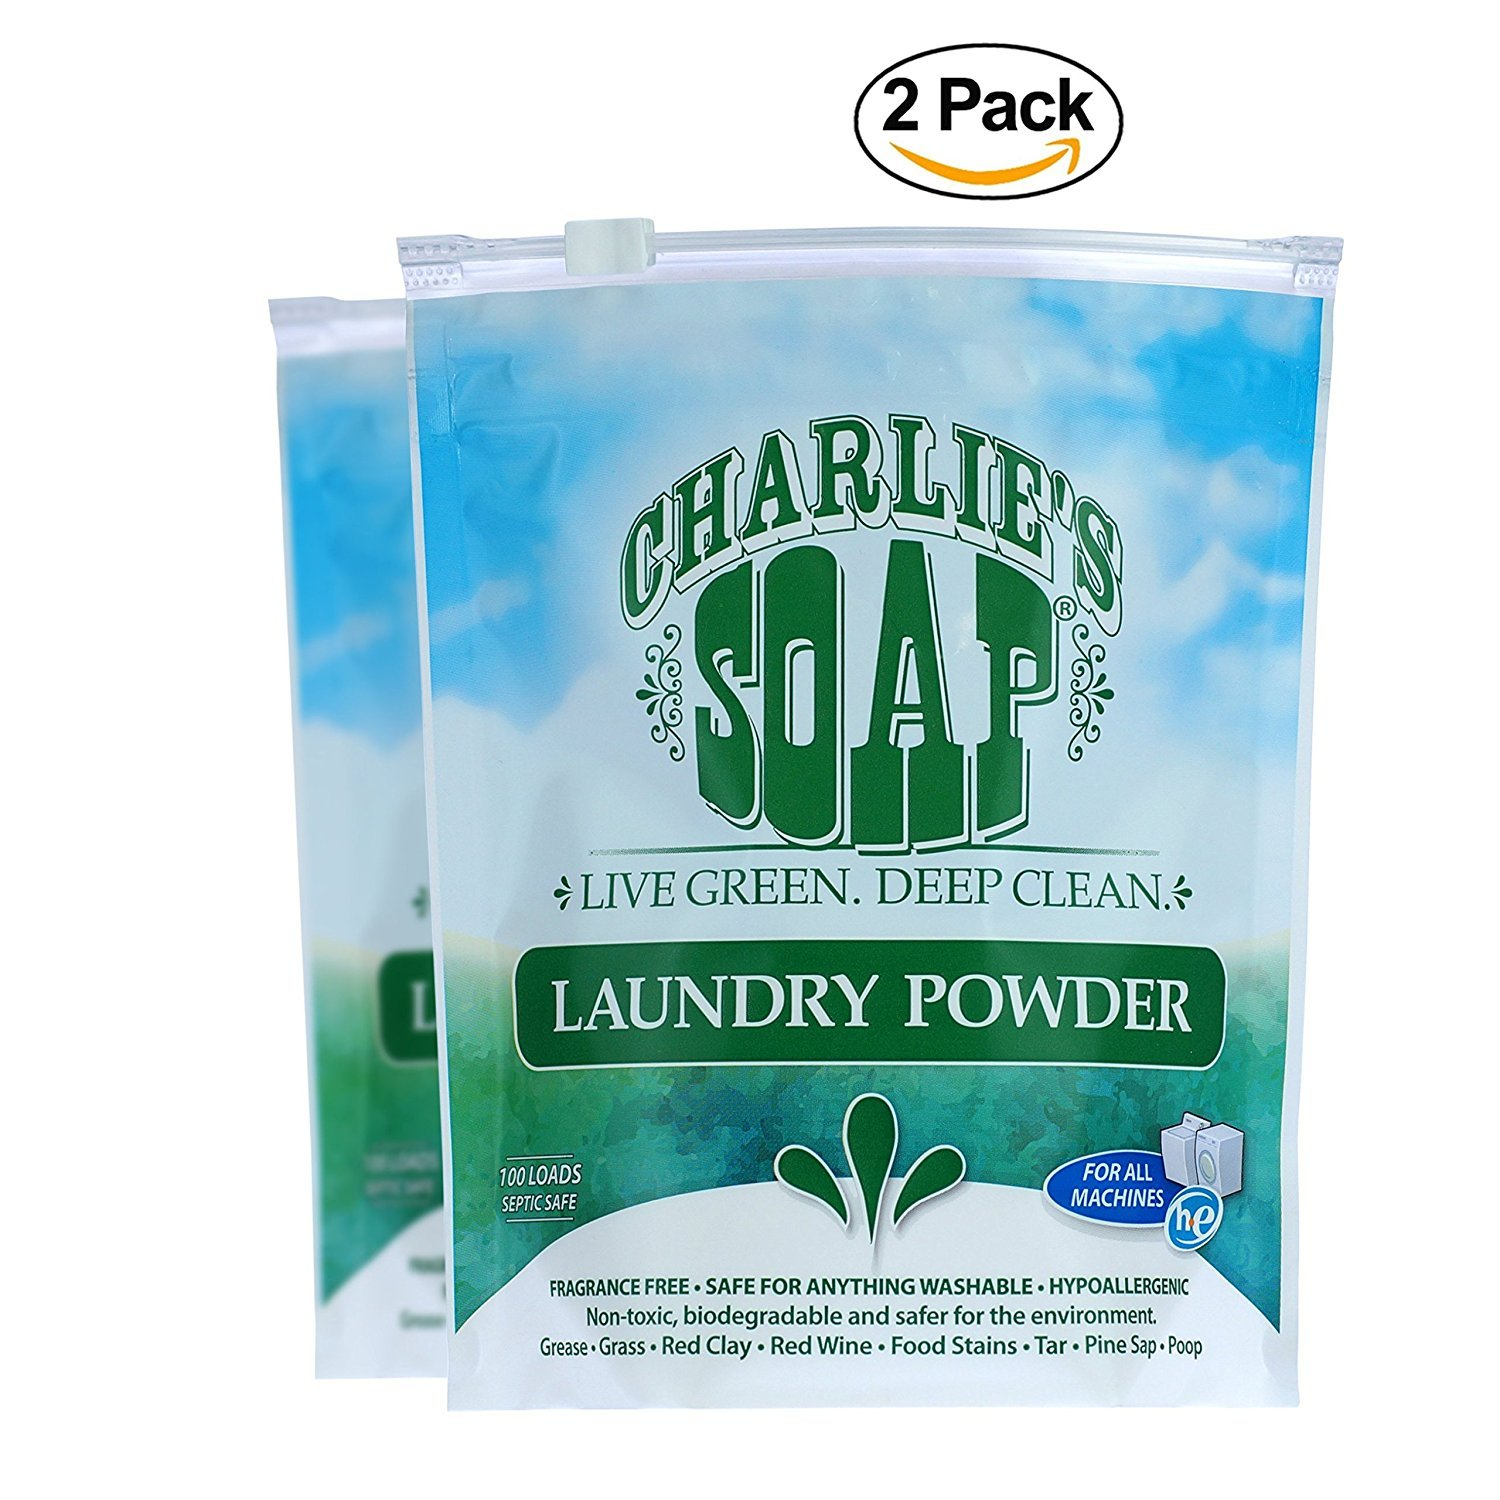 Charlie's Soap – Fragrance-Free Laundry Powder detergent – 100 Loads (2.64 lbs, 2 Pack)